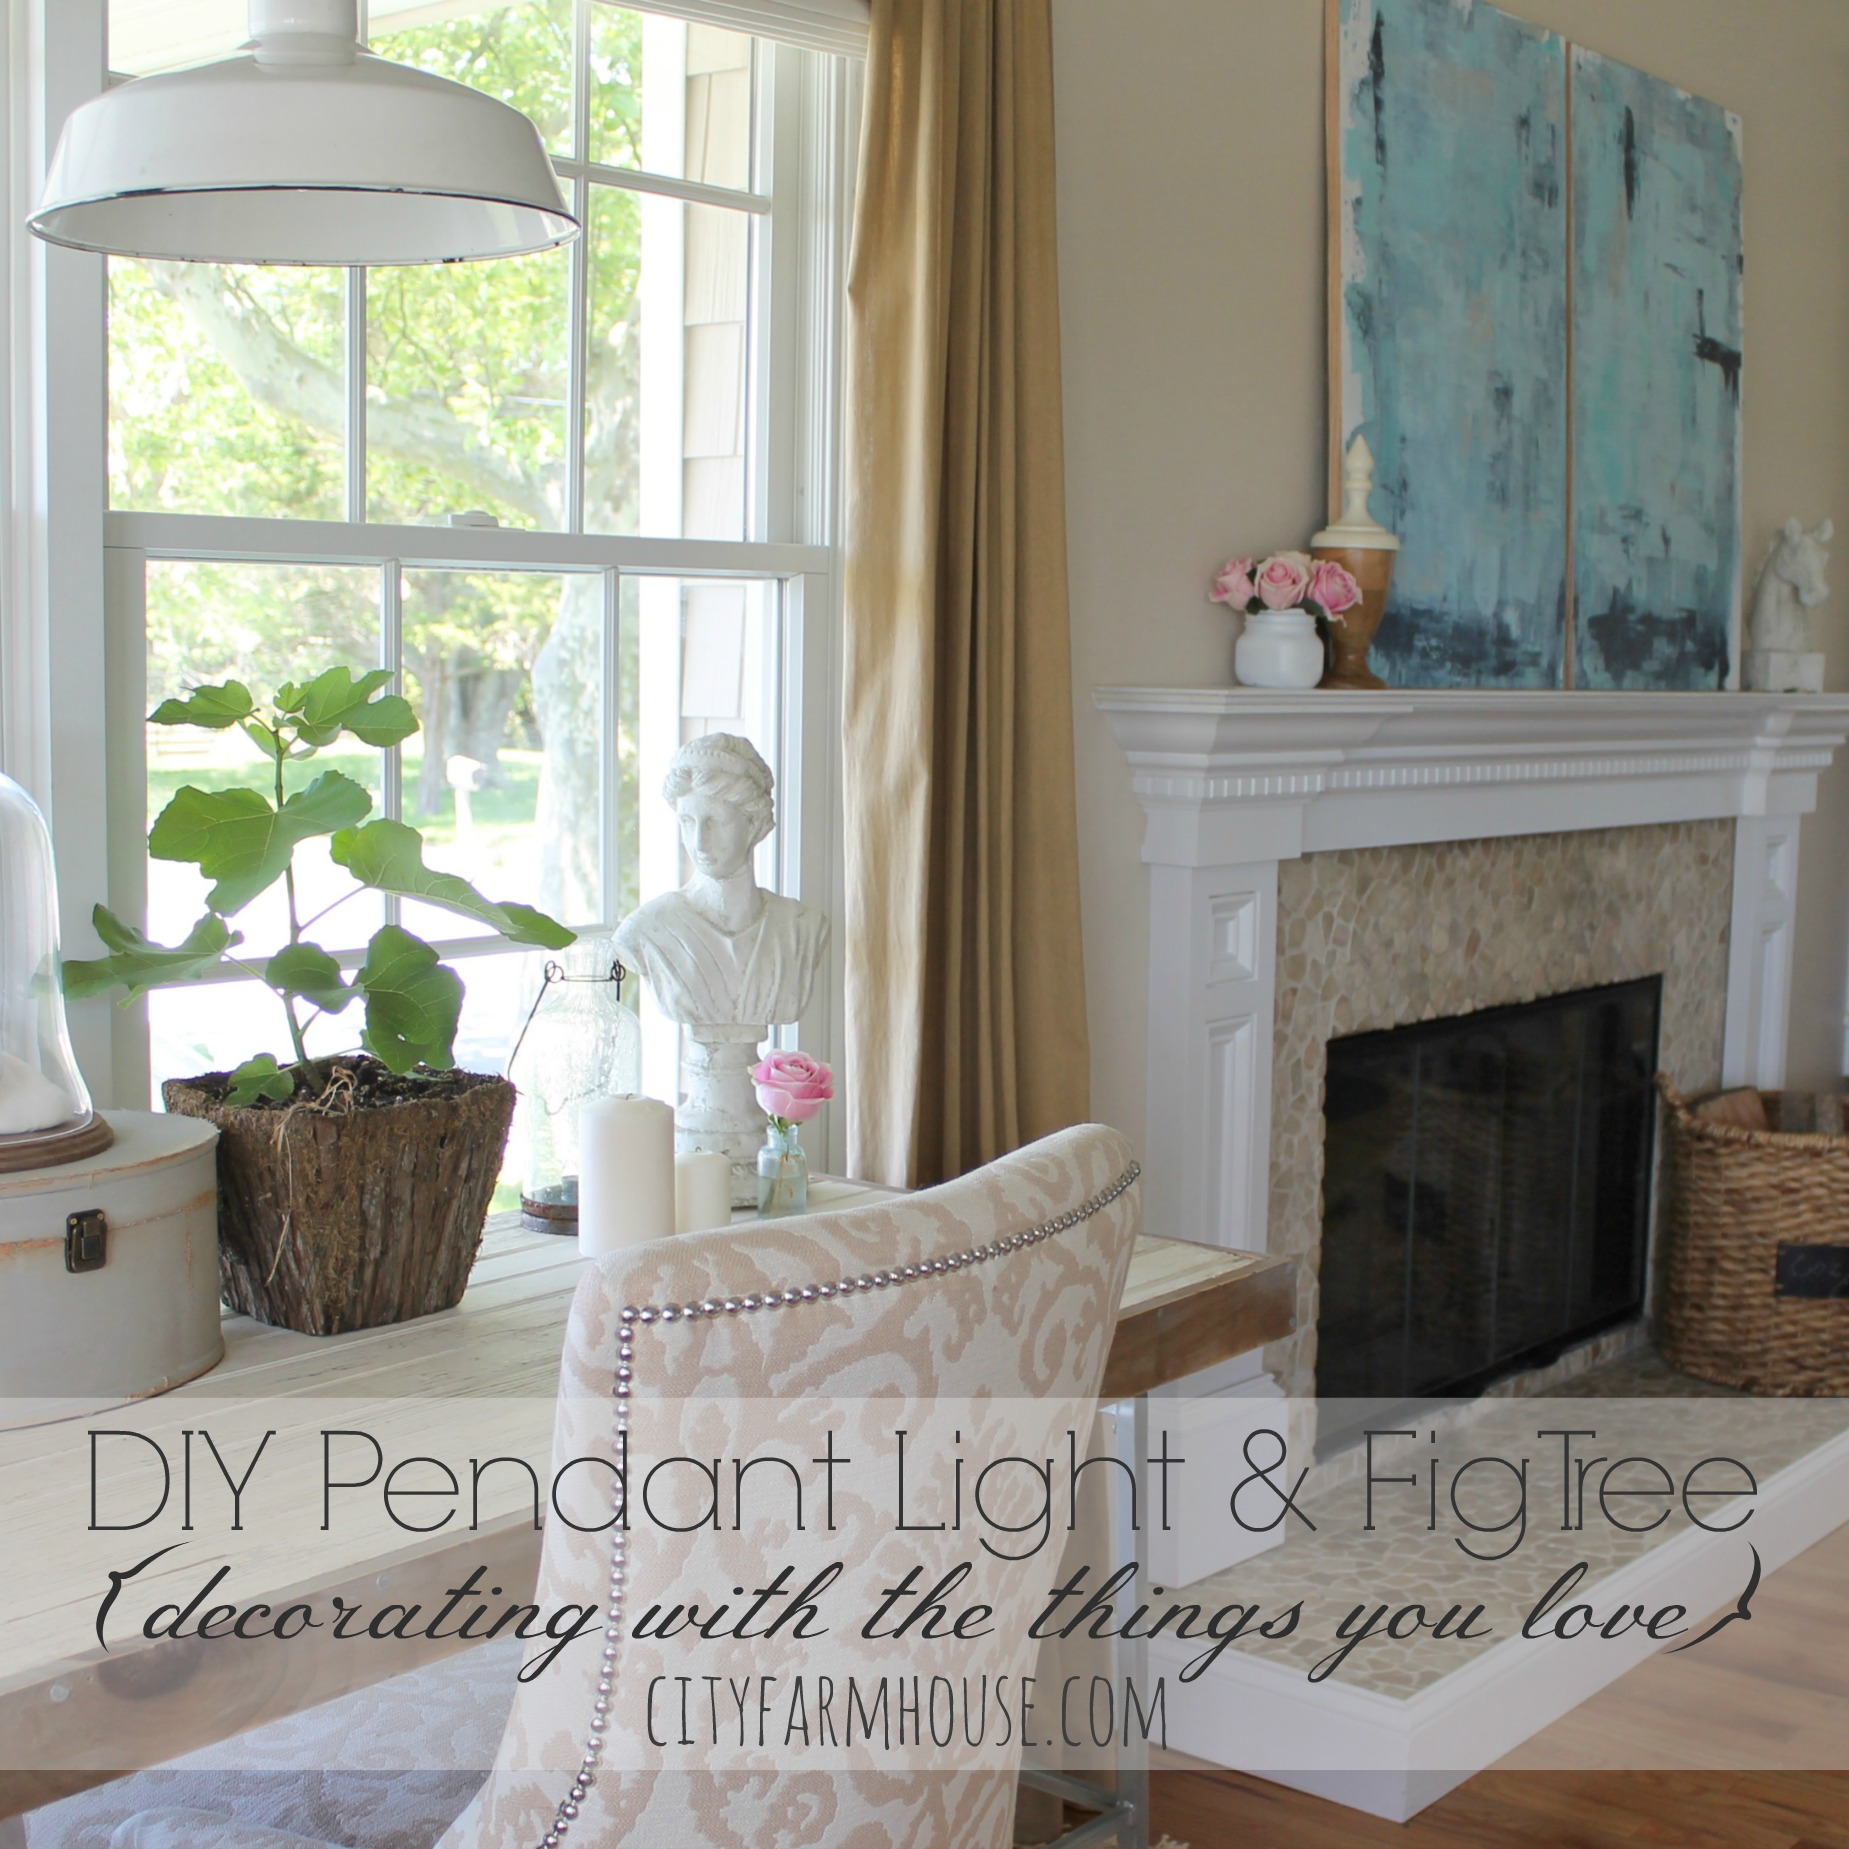 Diy pendant light a fig tree thoughts on decorating for Decor you adore facebook